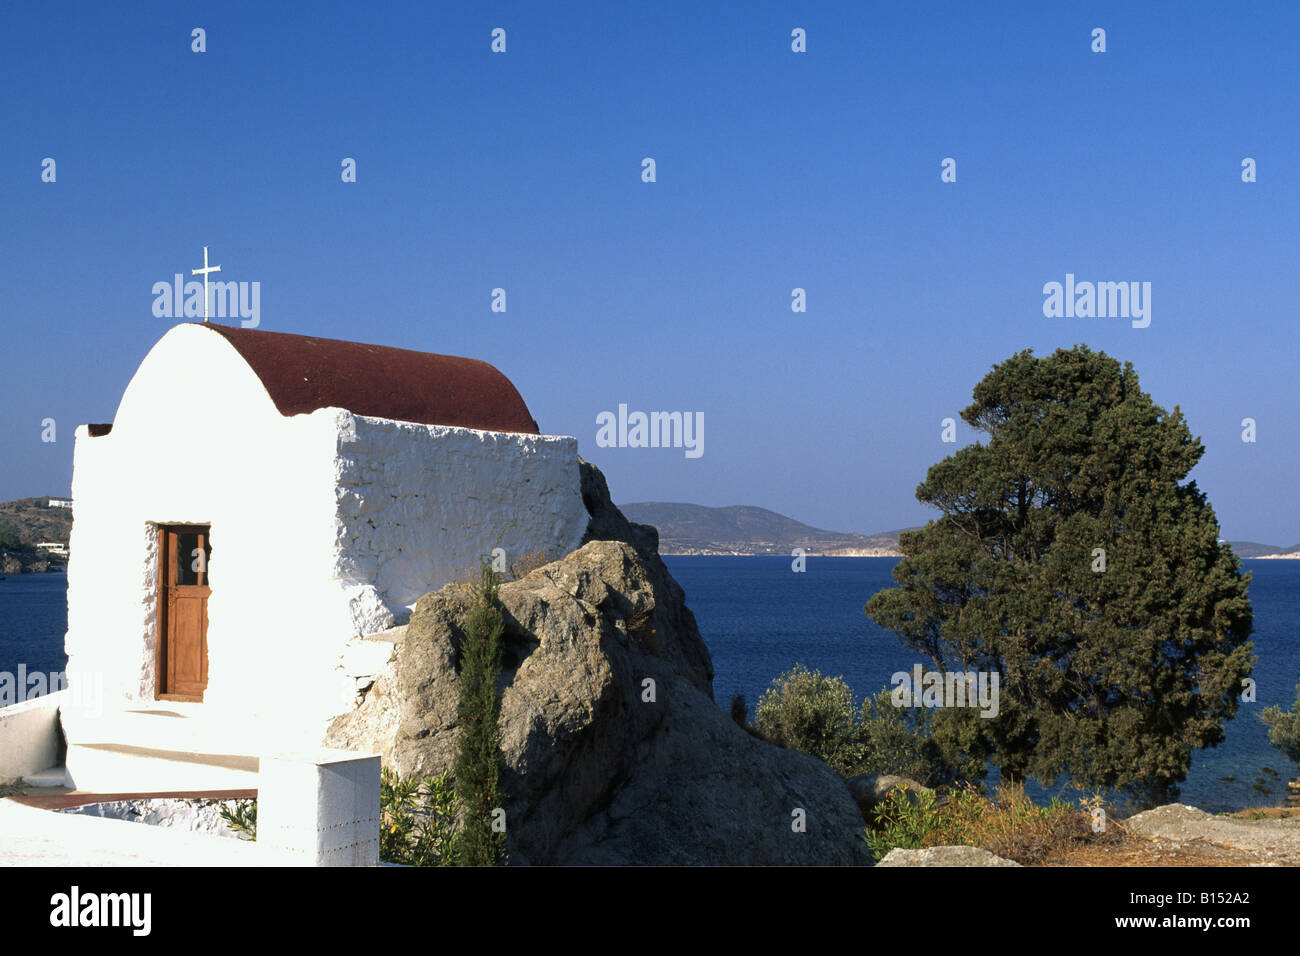 Chapell, Skala, Patmos, Dodecanese, Greece - Stock Image